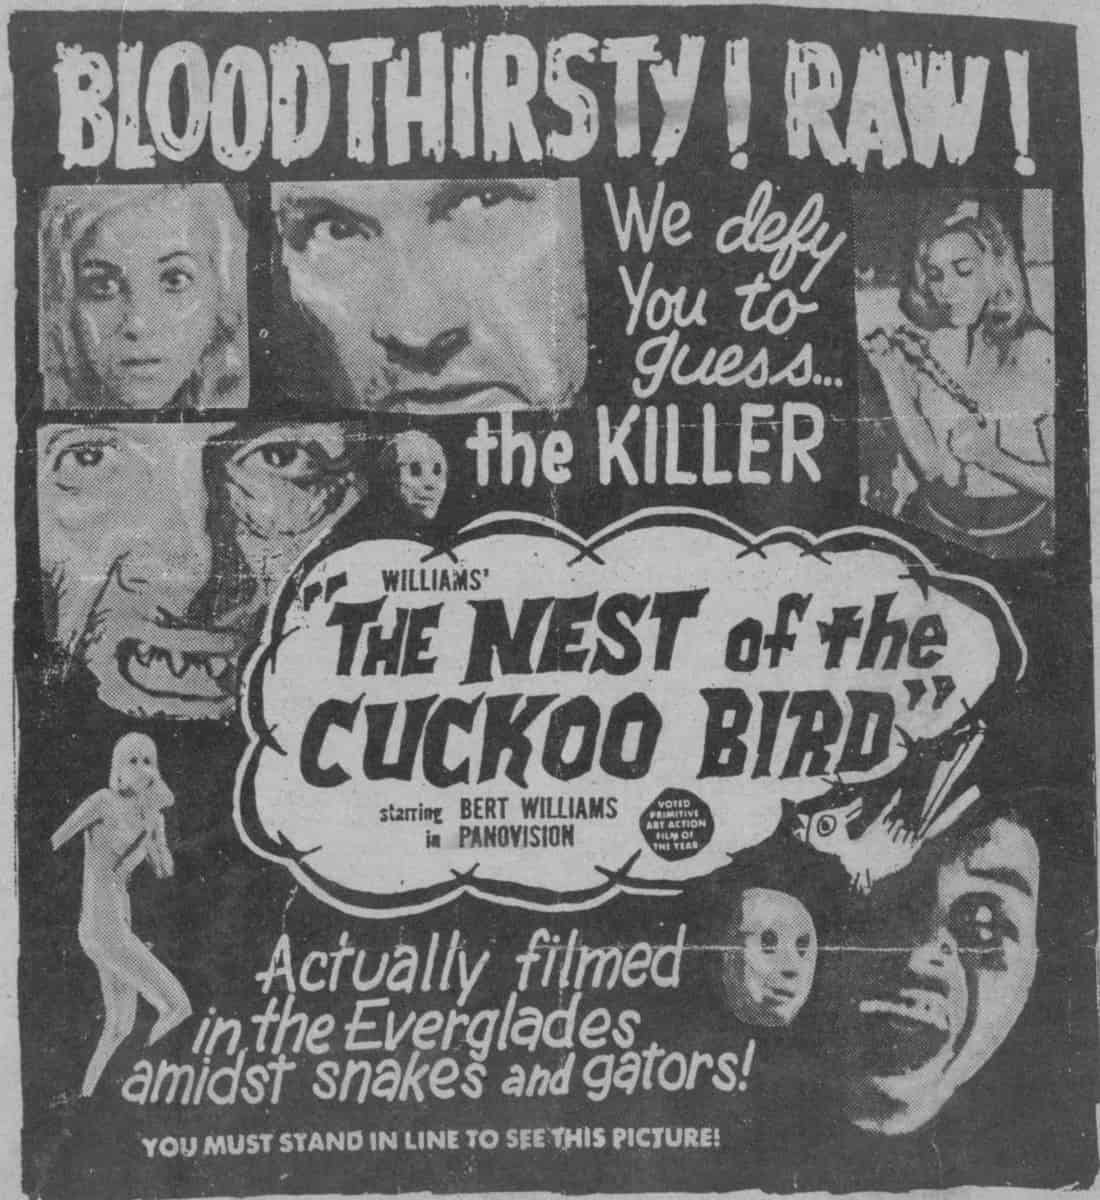 The Nest of the Cuckoo Birds - Movie Poster